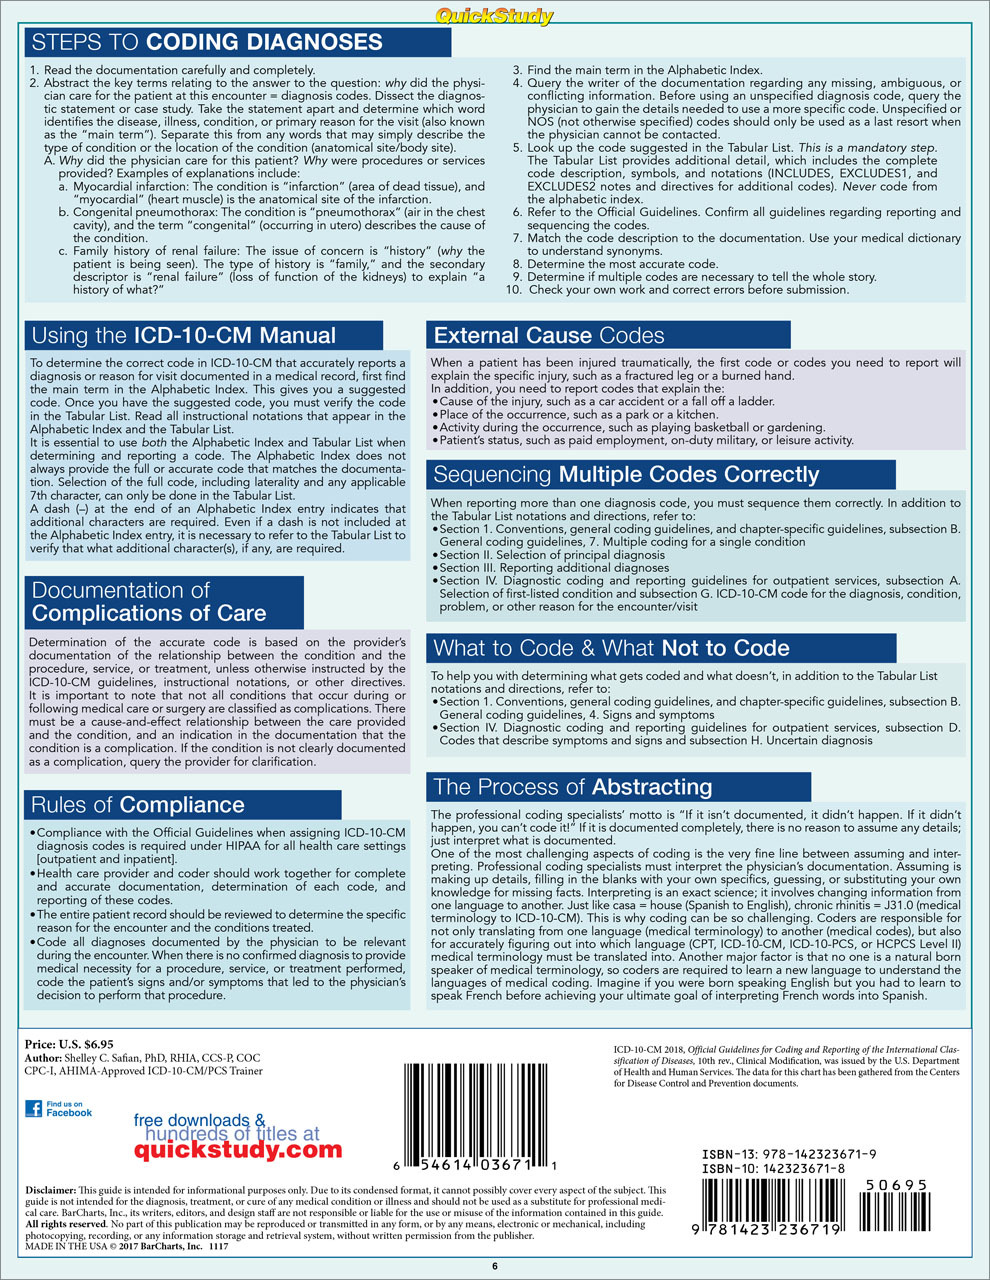 Quick Study QuickStudy Medical Coding ICD-10-CM Laminated Reference Guide BarCharts Publishing Medical Career Outline Back Image